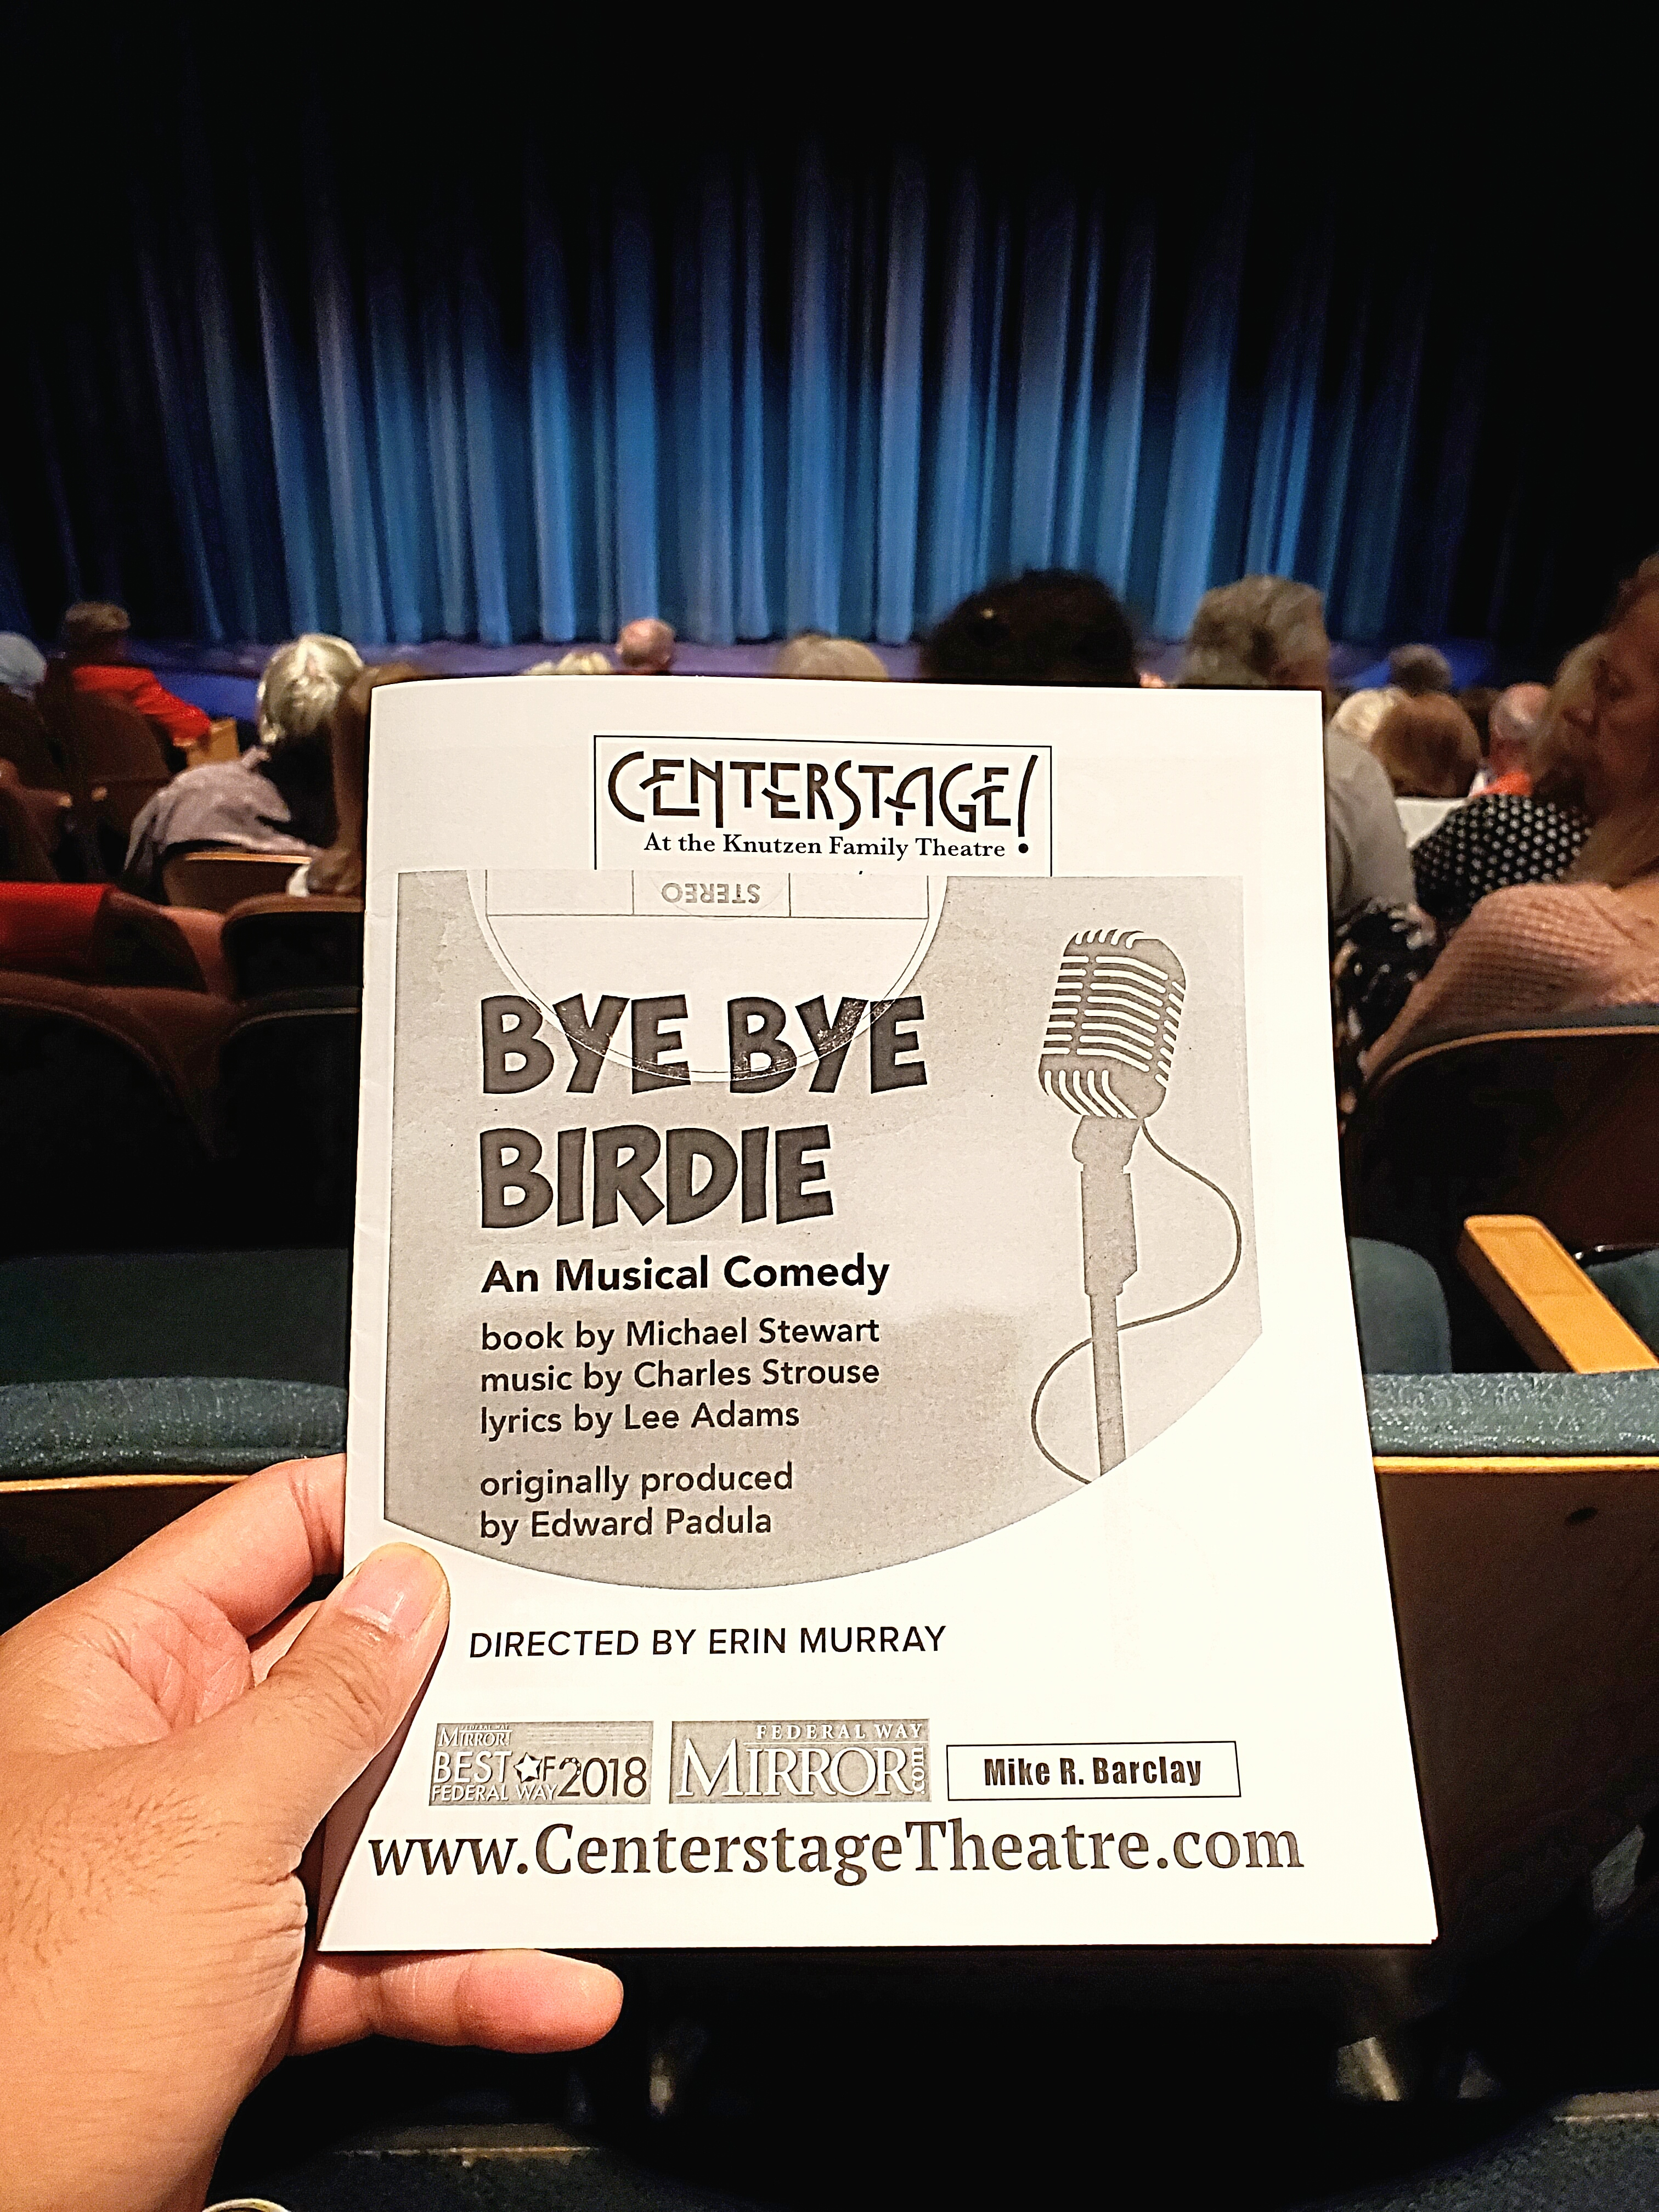 Bye Bye Birdie (musical) w/ Raymund at Centerstage Theatre. The dramatic middle-aged